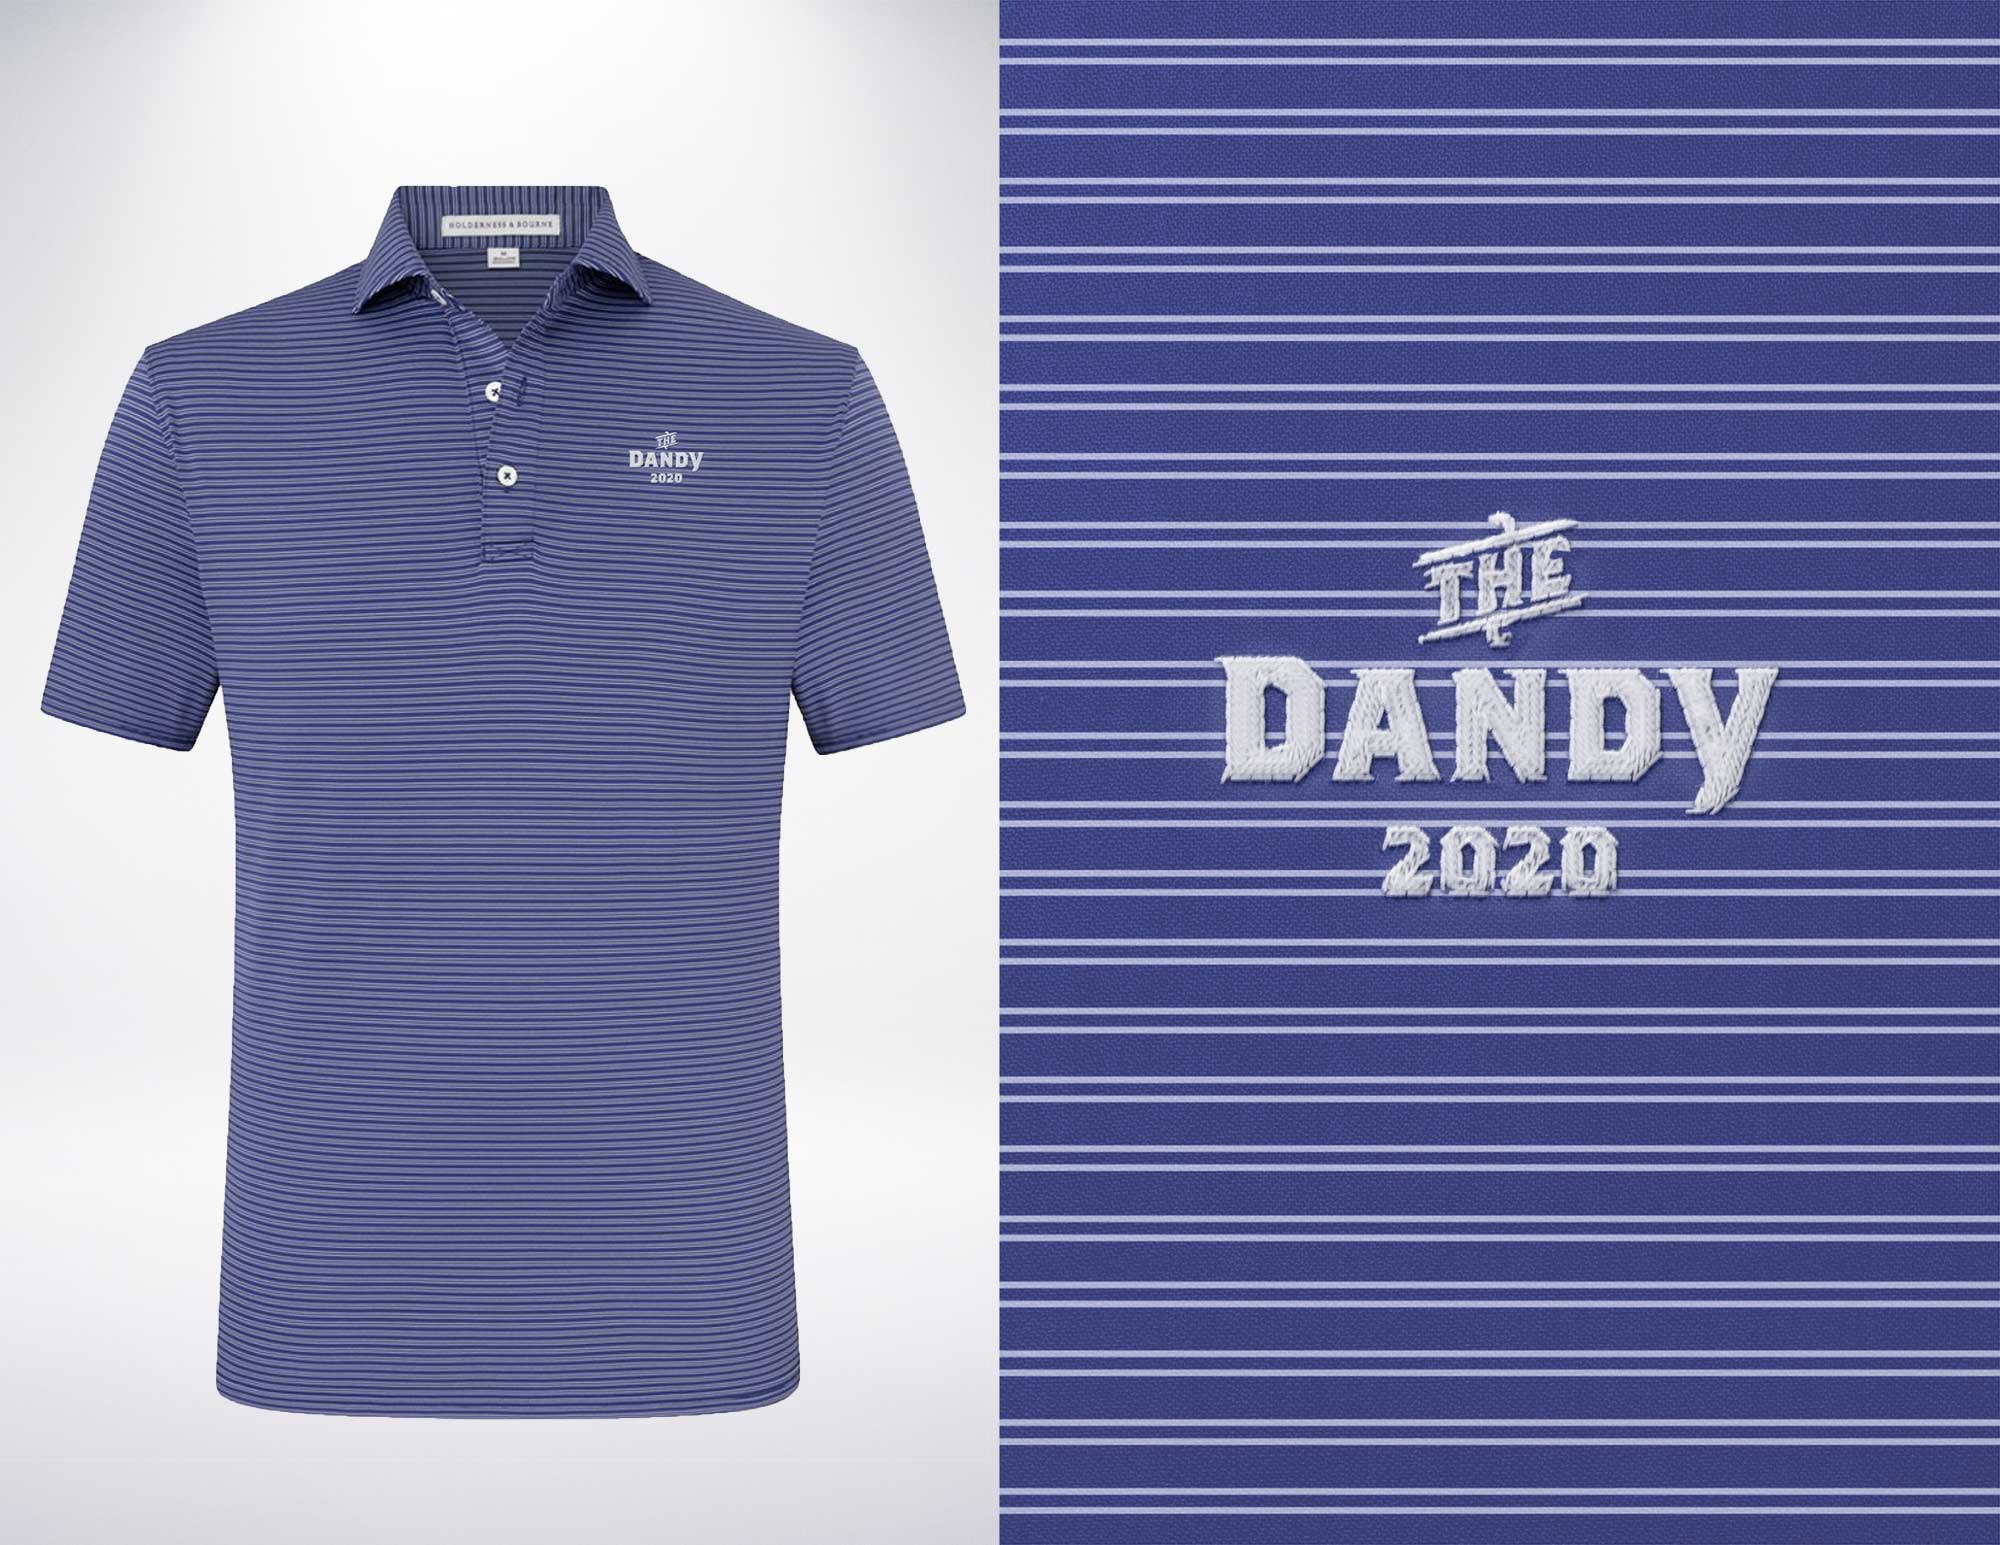 TheDandy_Shirt